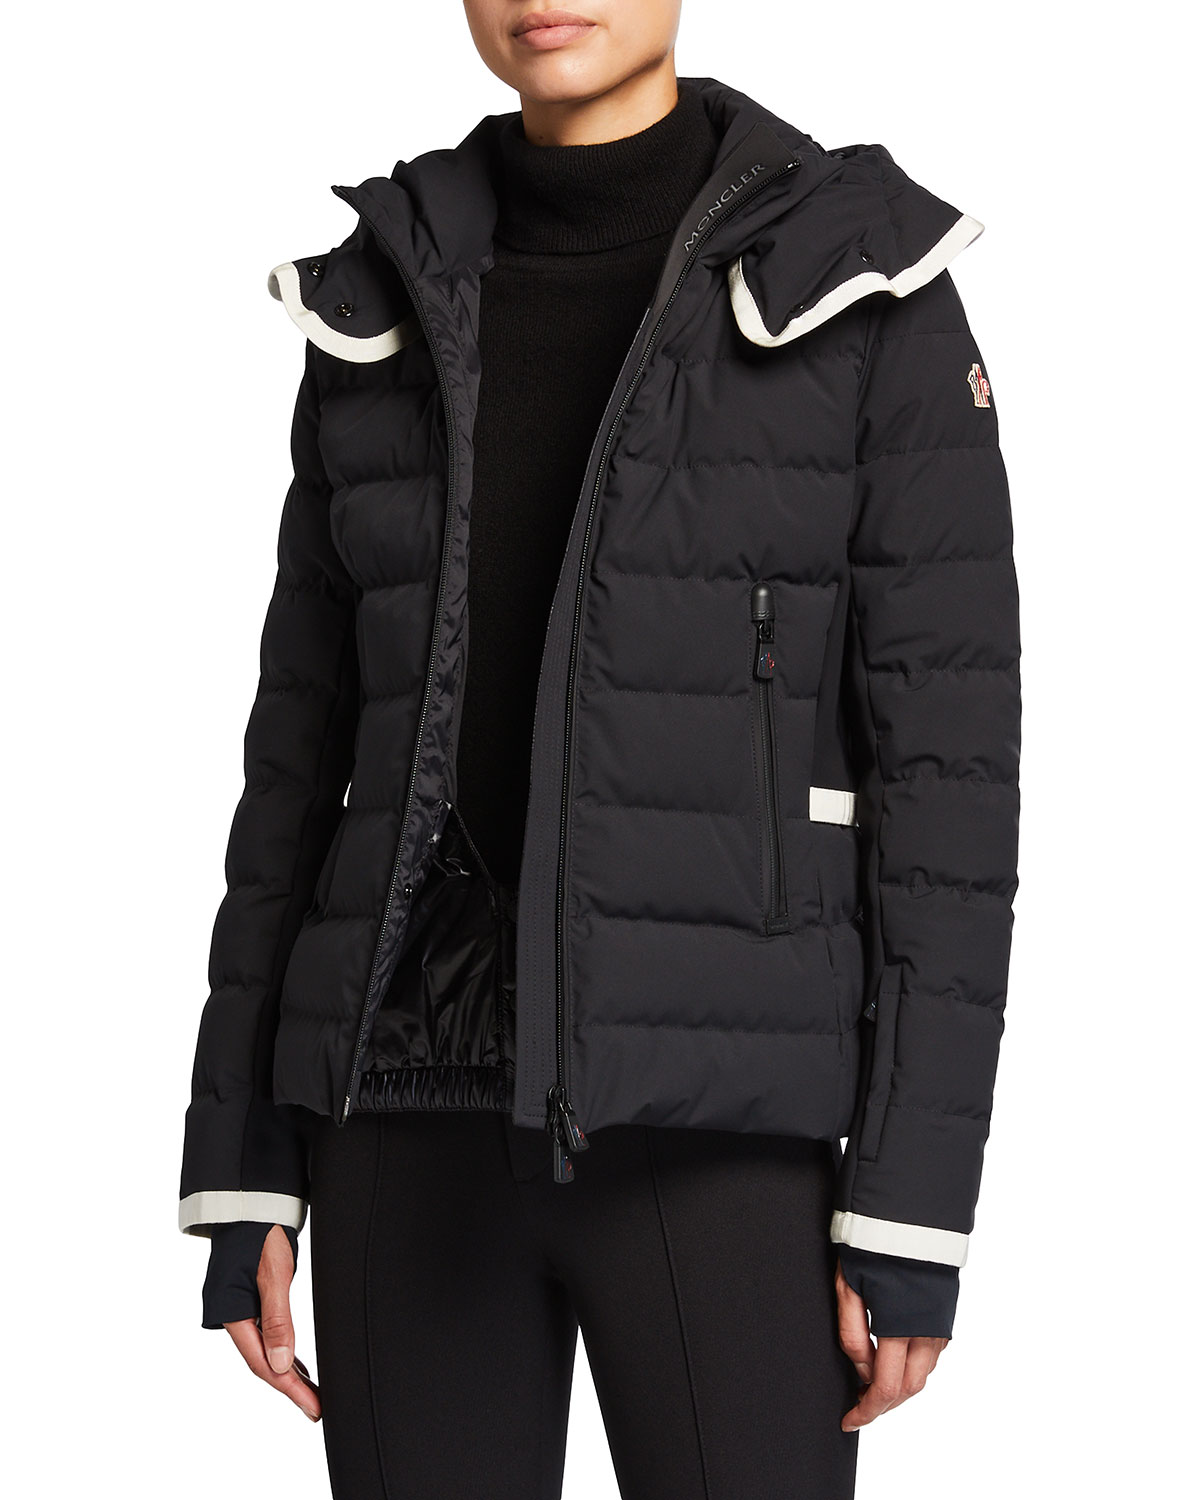 Moncler Lamoura Contrast-Trim Technical Ski Jacket